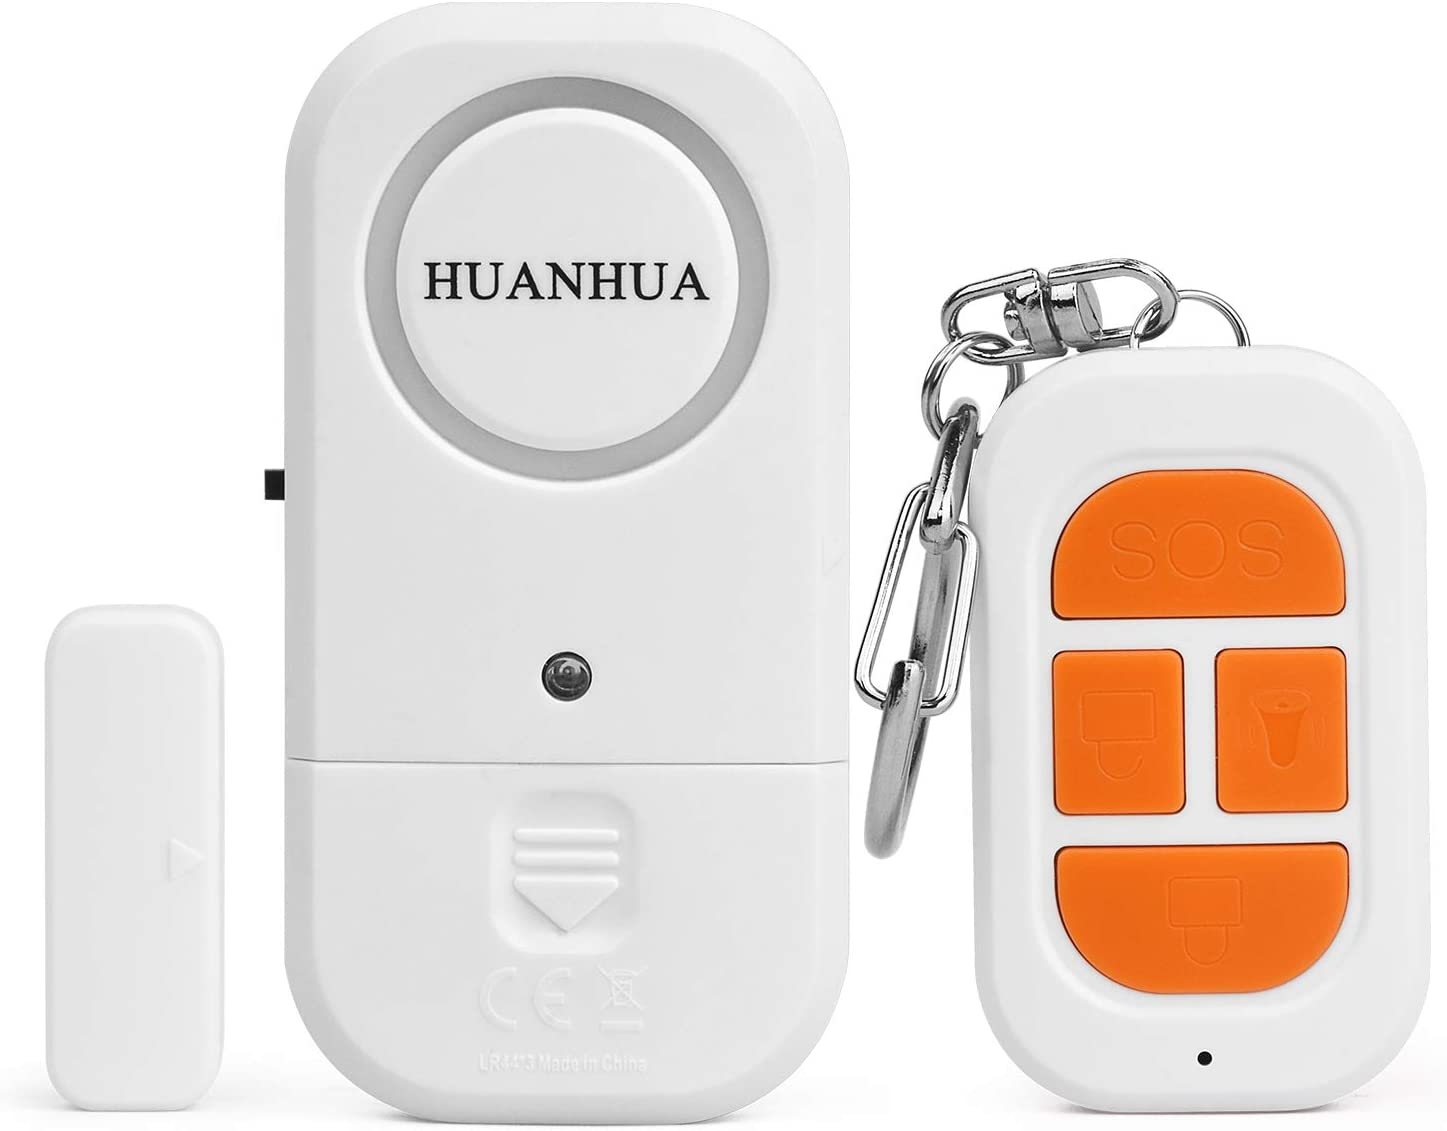 HUANHUA Window Door Alarm, Wireless Remote Alarm Sensor with 1 Siren Unit,1 Remote Control Home Security System for Protecting Kids Safety, Home, Store